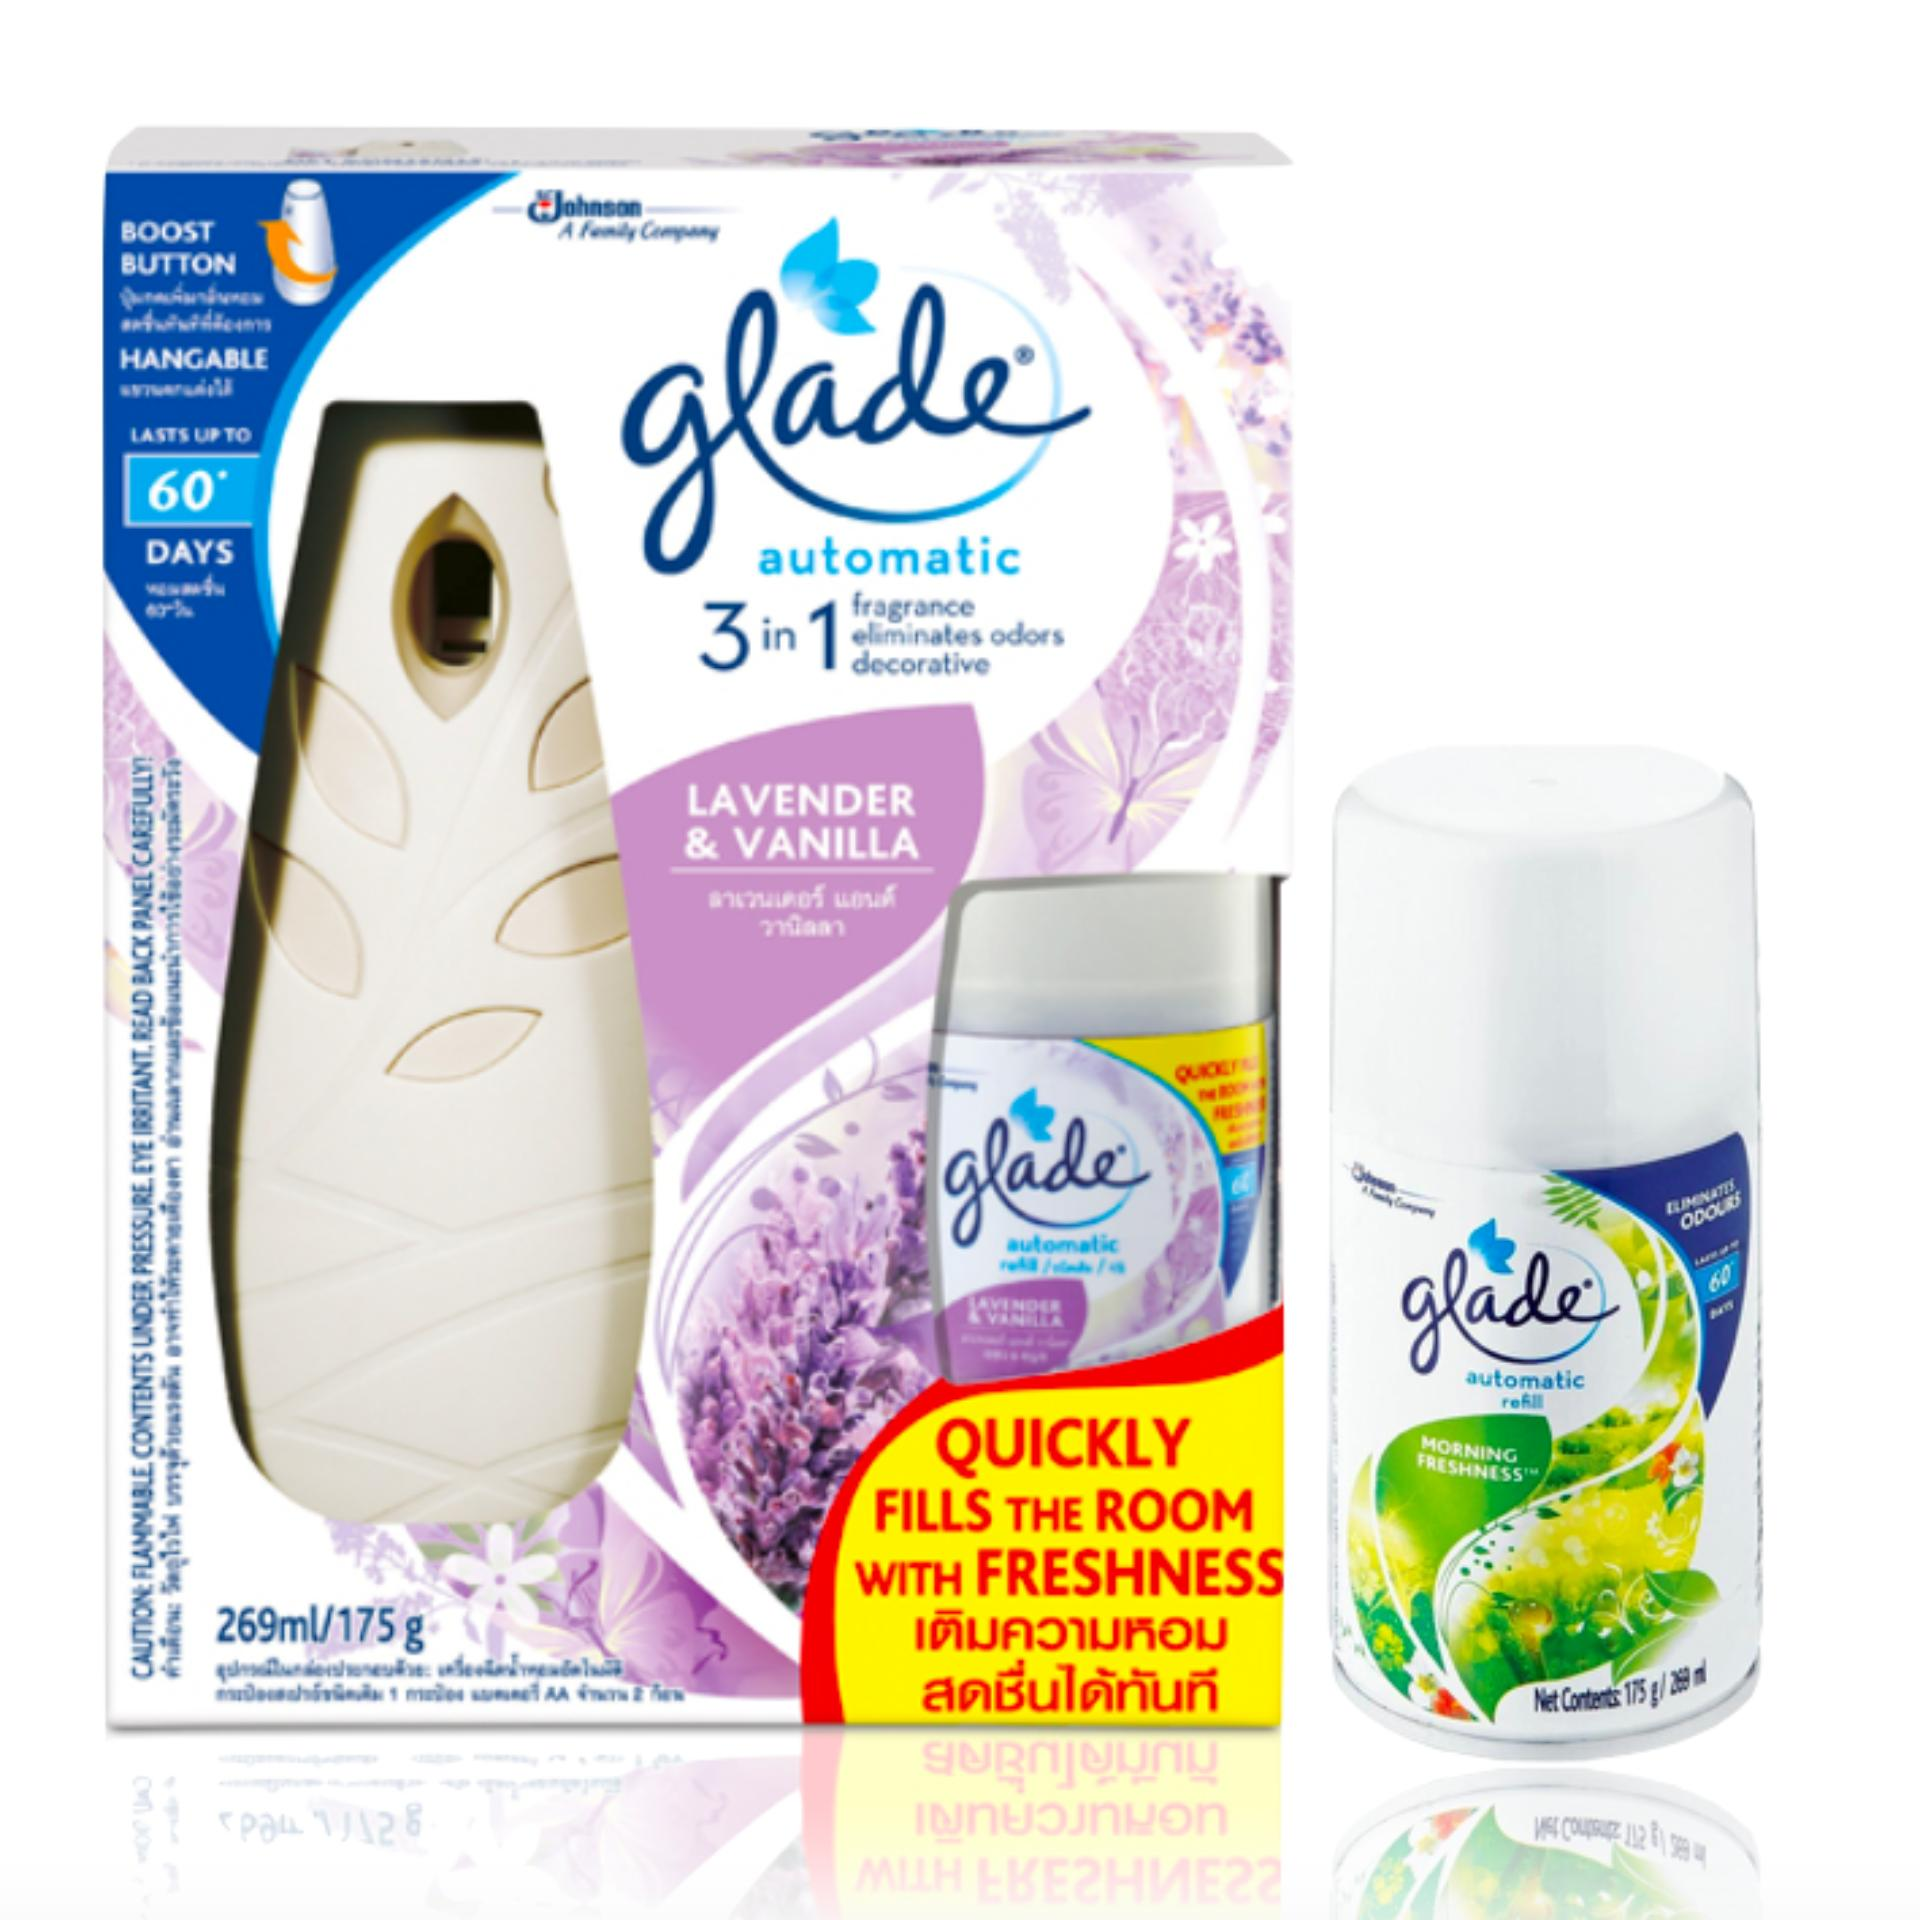 Philippines Best Buy Laundry Household Fragrance 06 09 2018 Twin Pack Glade Matic Spray Refill Ocean Escape Lavender Vanilla Automatic Starter Kit With Morning Freshness